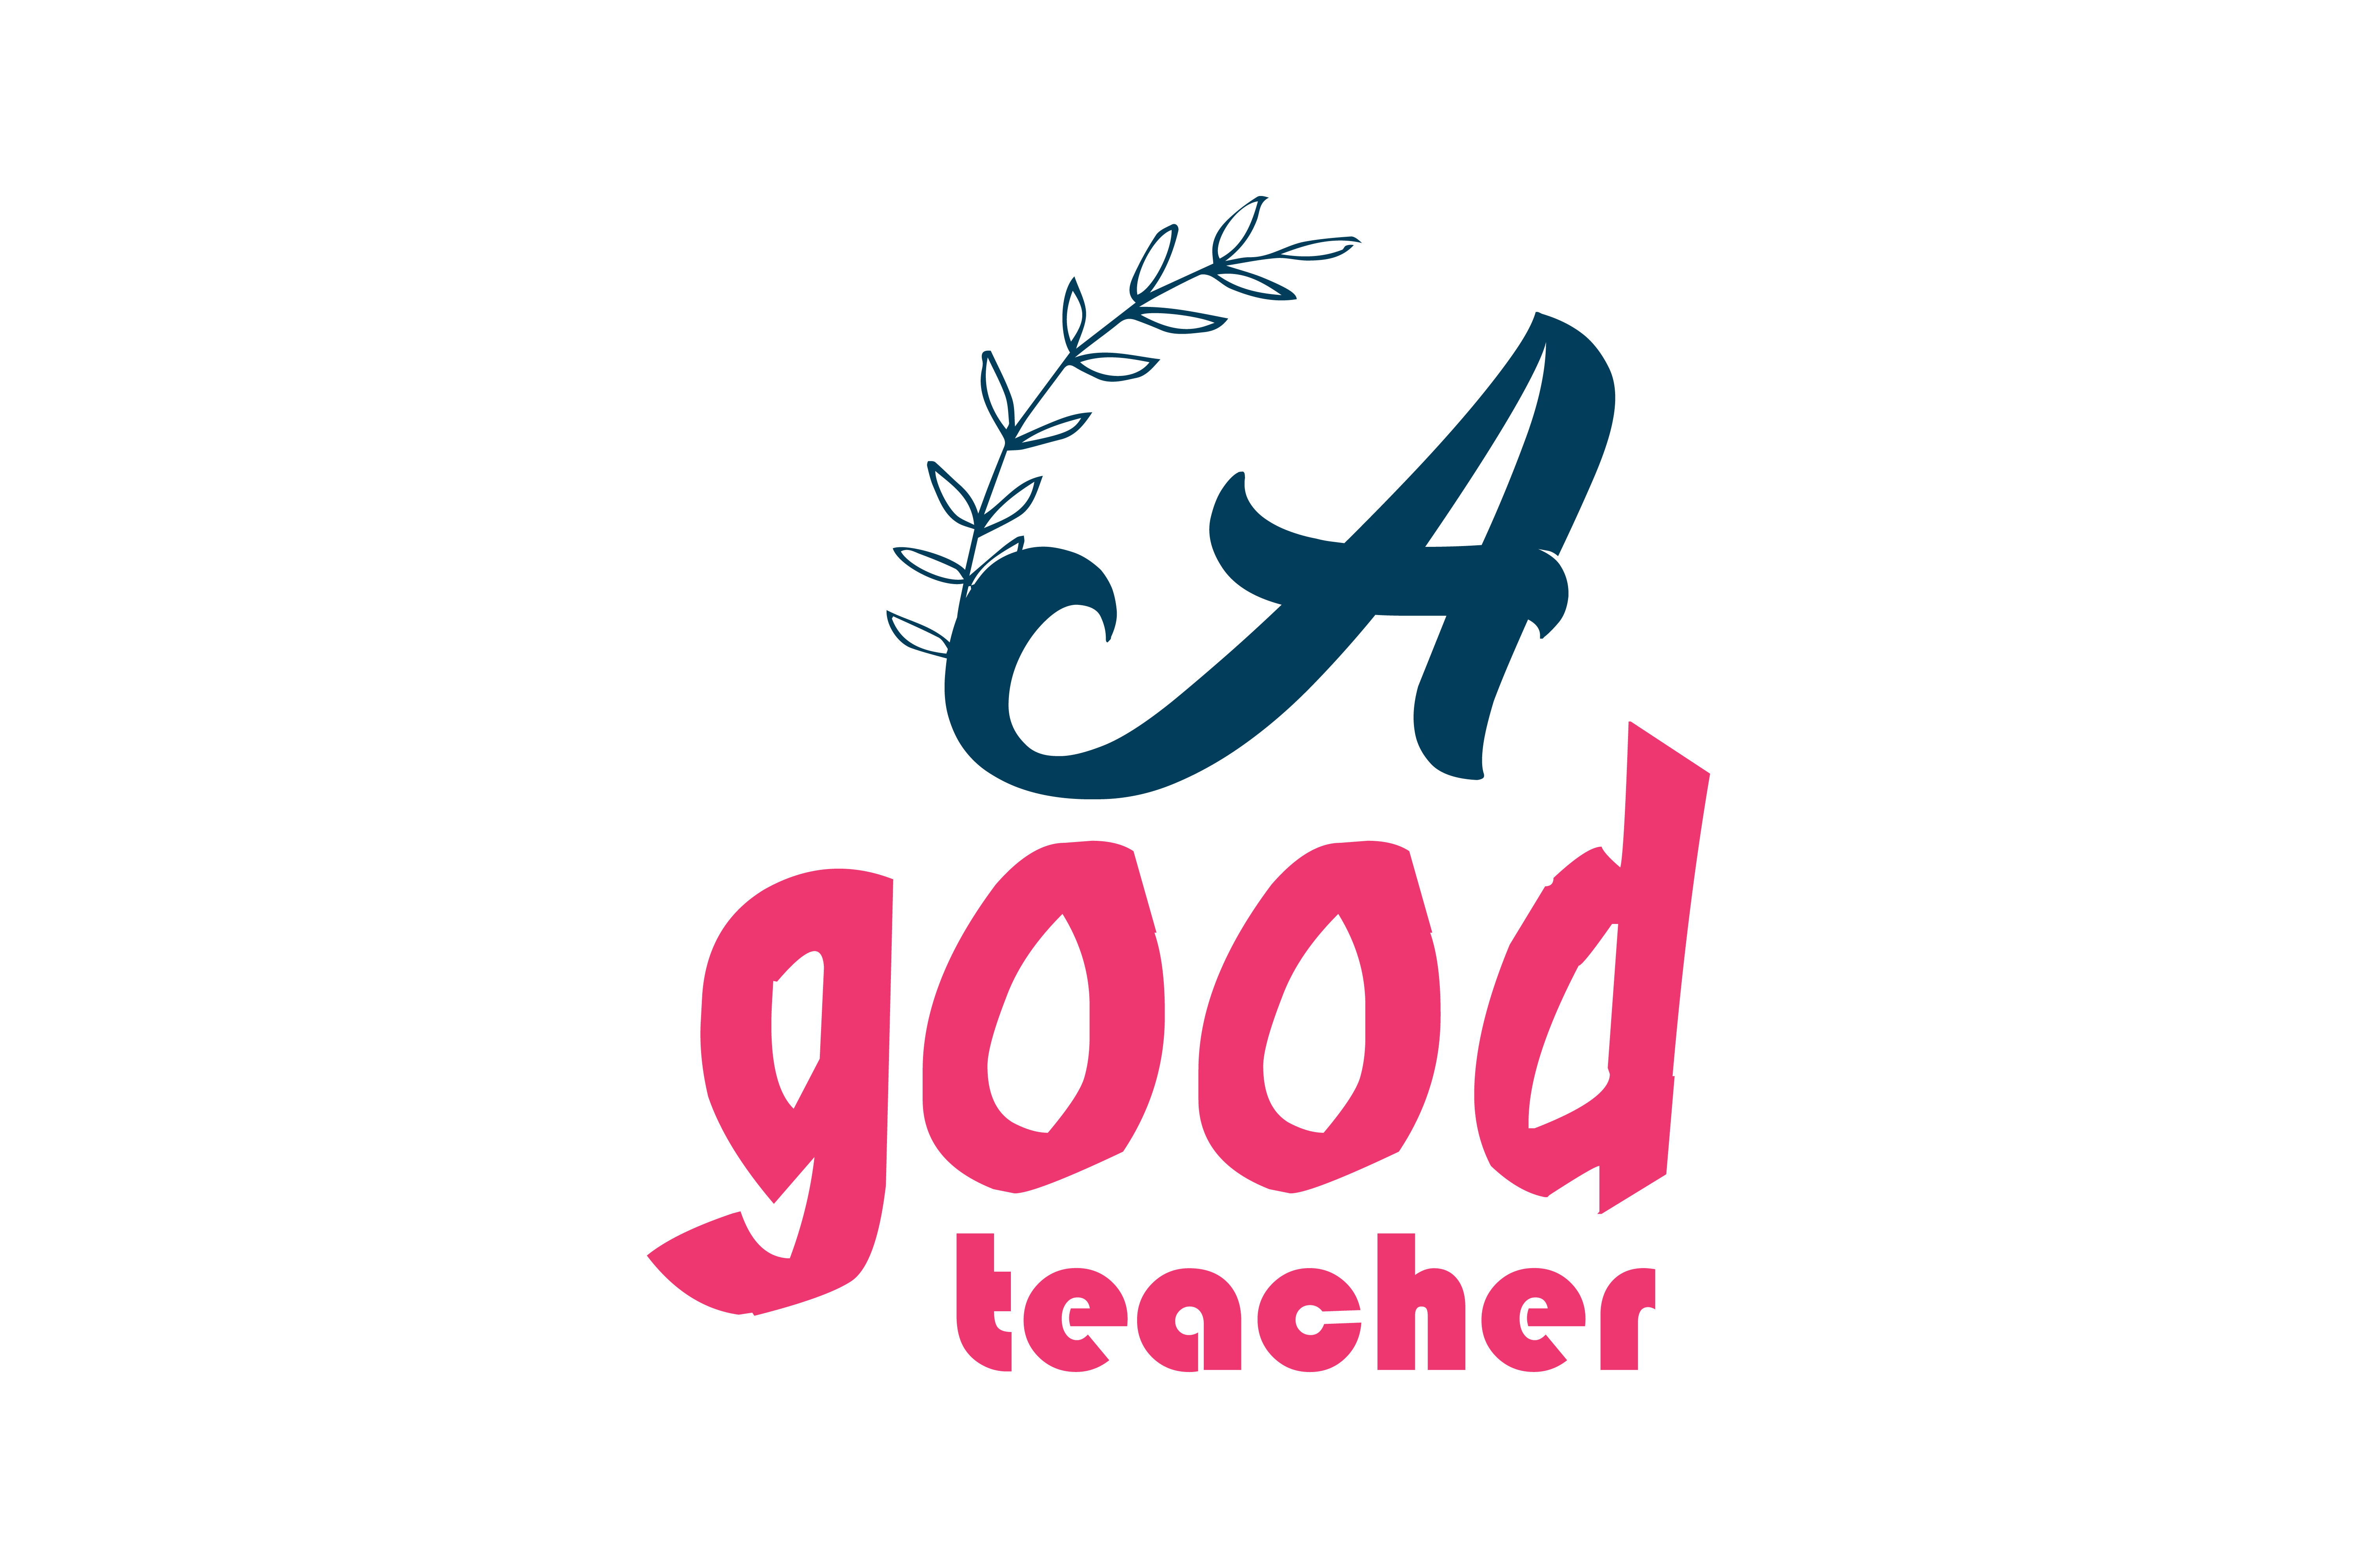 Download Free A Good Teacher Quote Svg Cut Graphic By Thelucky Creative Fabrica for Cricut Explore, Silhouette and other cutting machines.